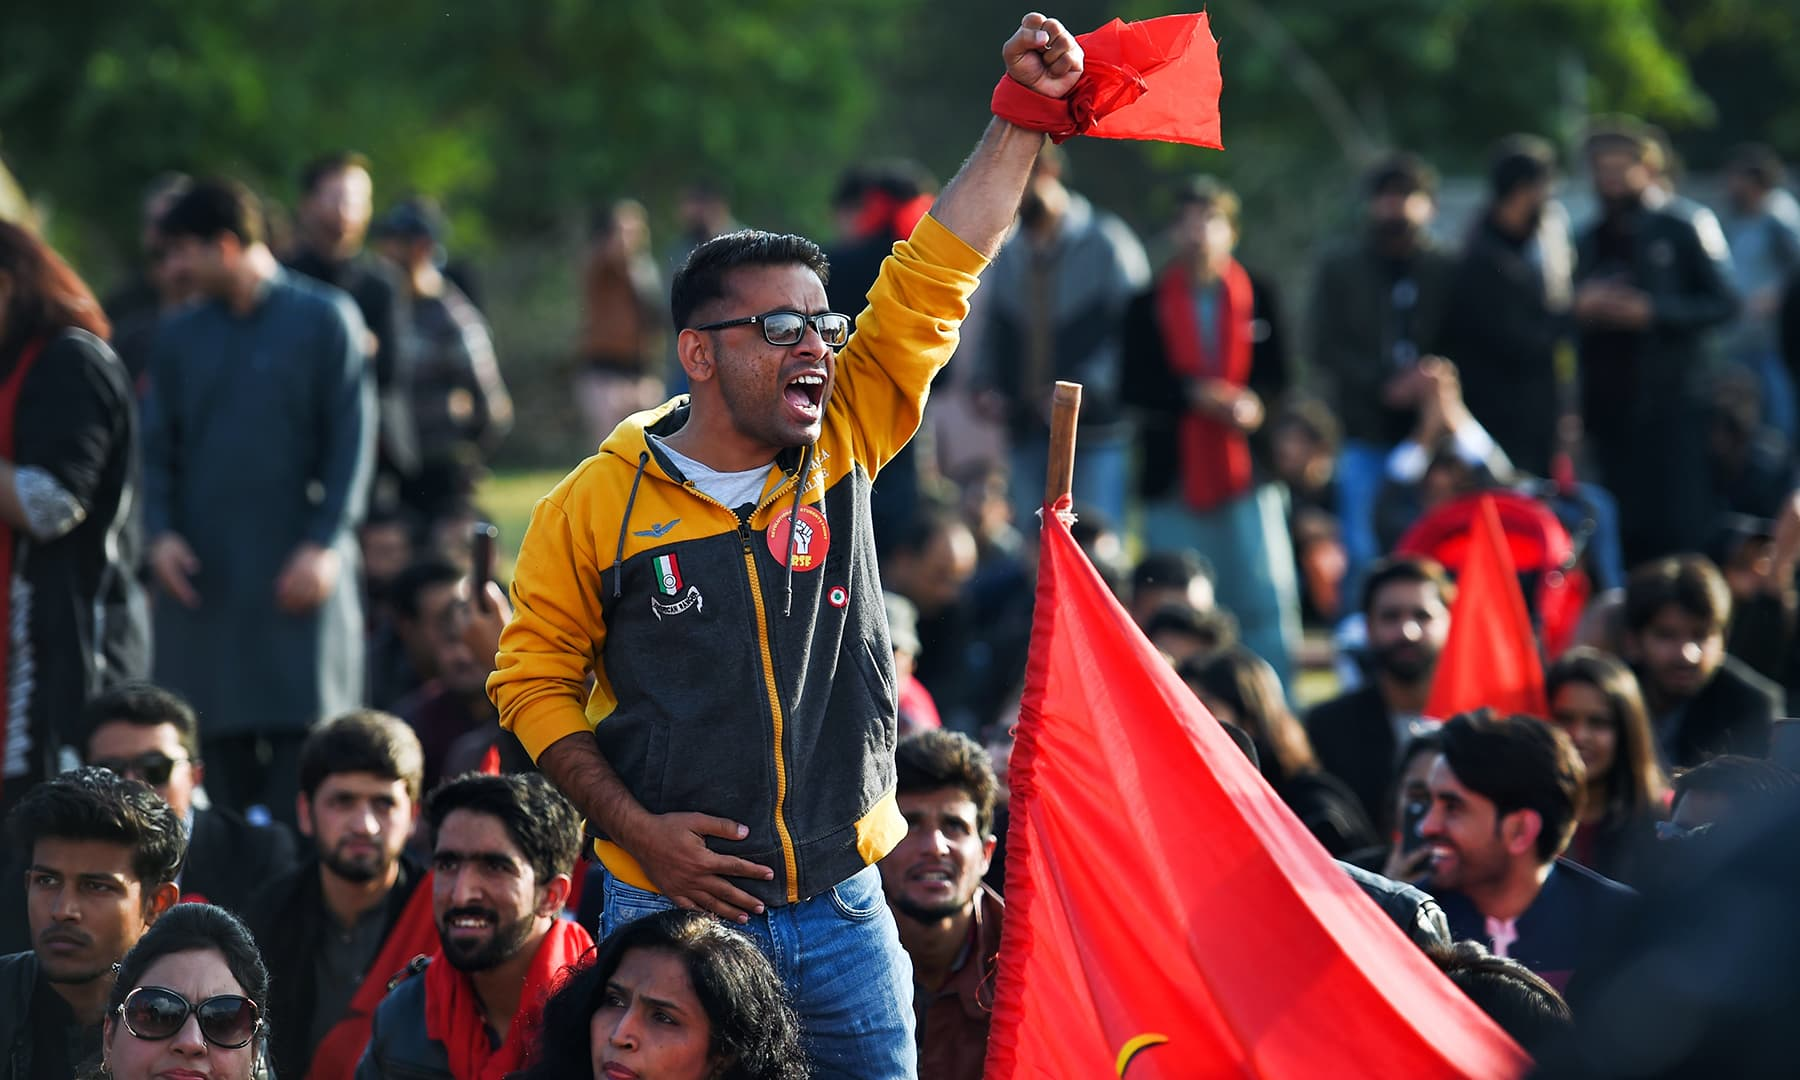 Students shout slogans demanding their right to student unions, in the march in Karachi on Friday. — AFP